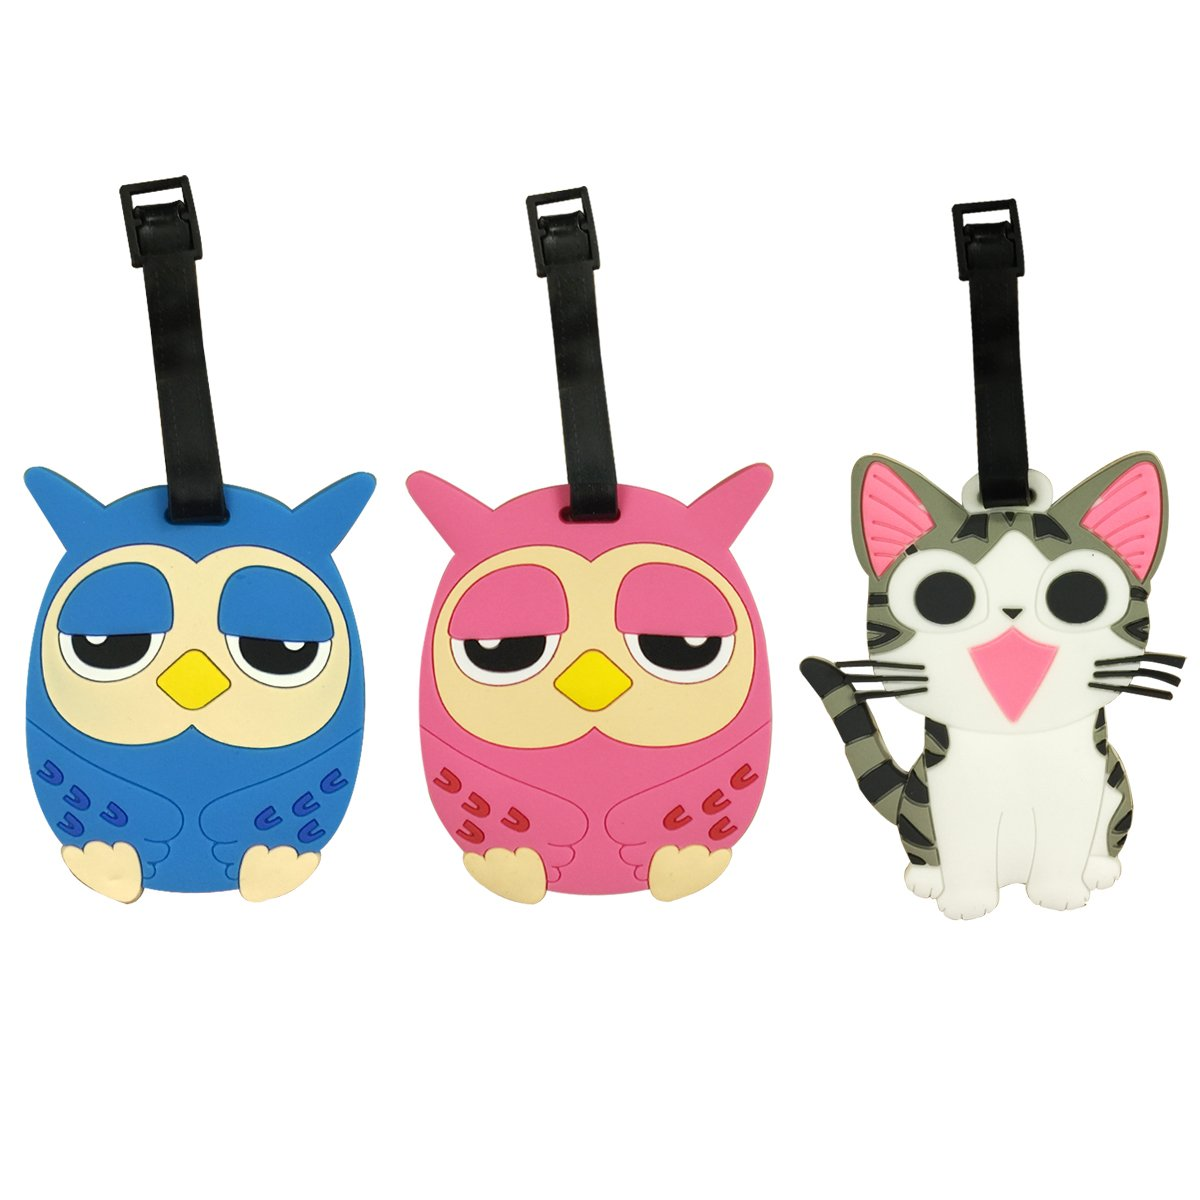 Wrapables Silicone Animal Luggage Tag with ID Card (Set of 3), Owls and Cat B01H819SNS